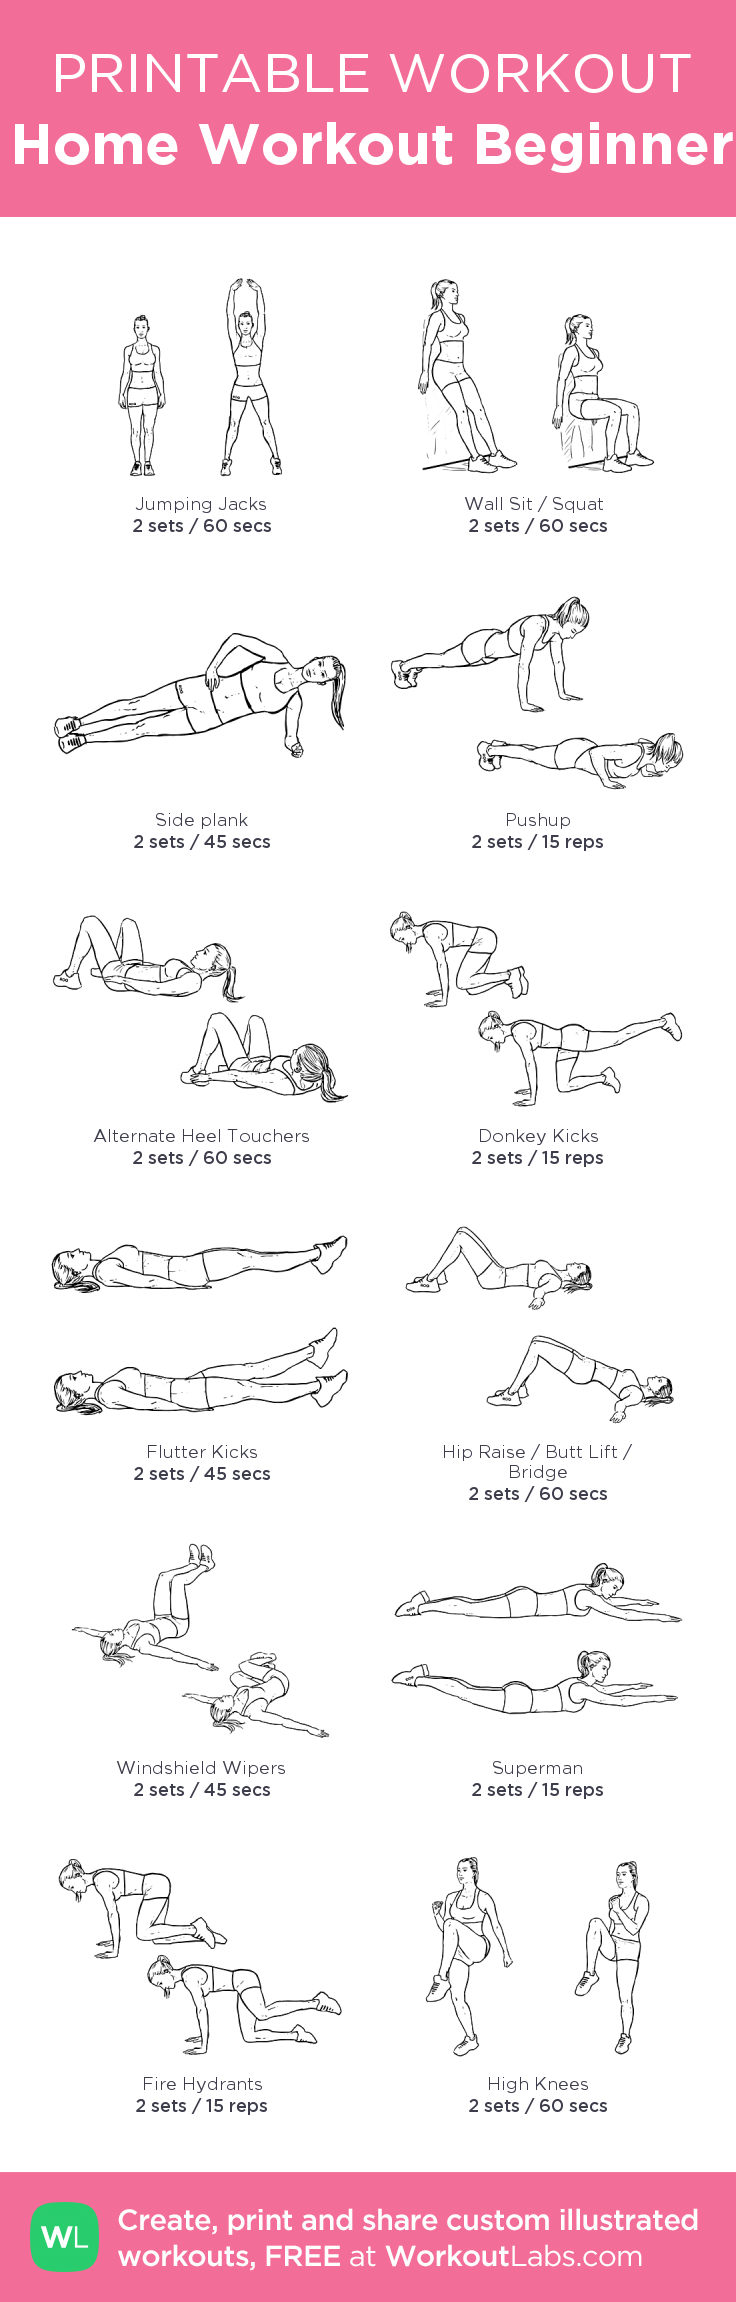 Home Workout for Beginner: my custom printable workout by